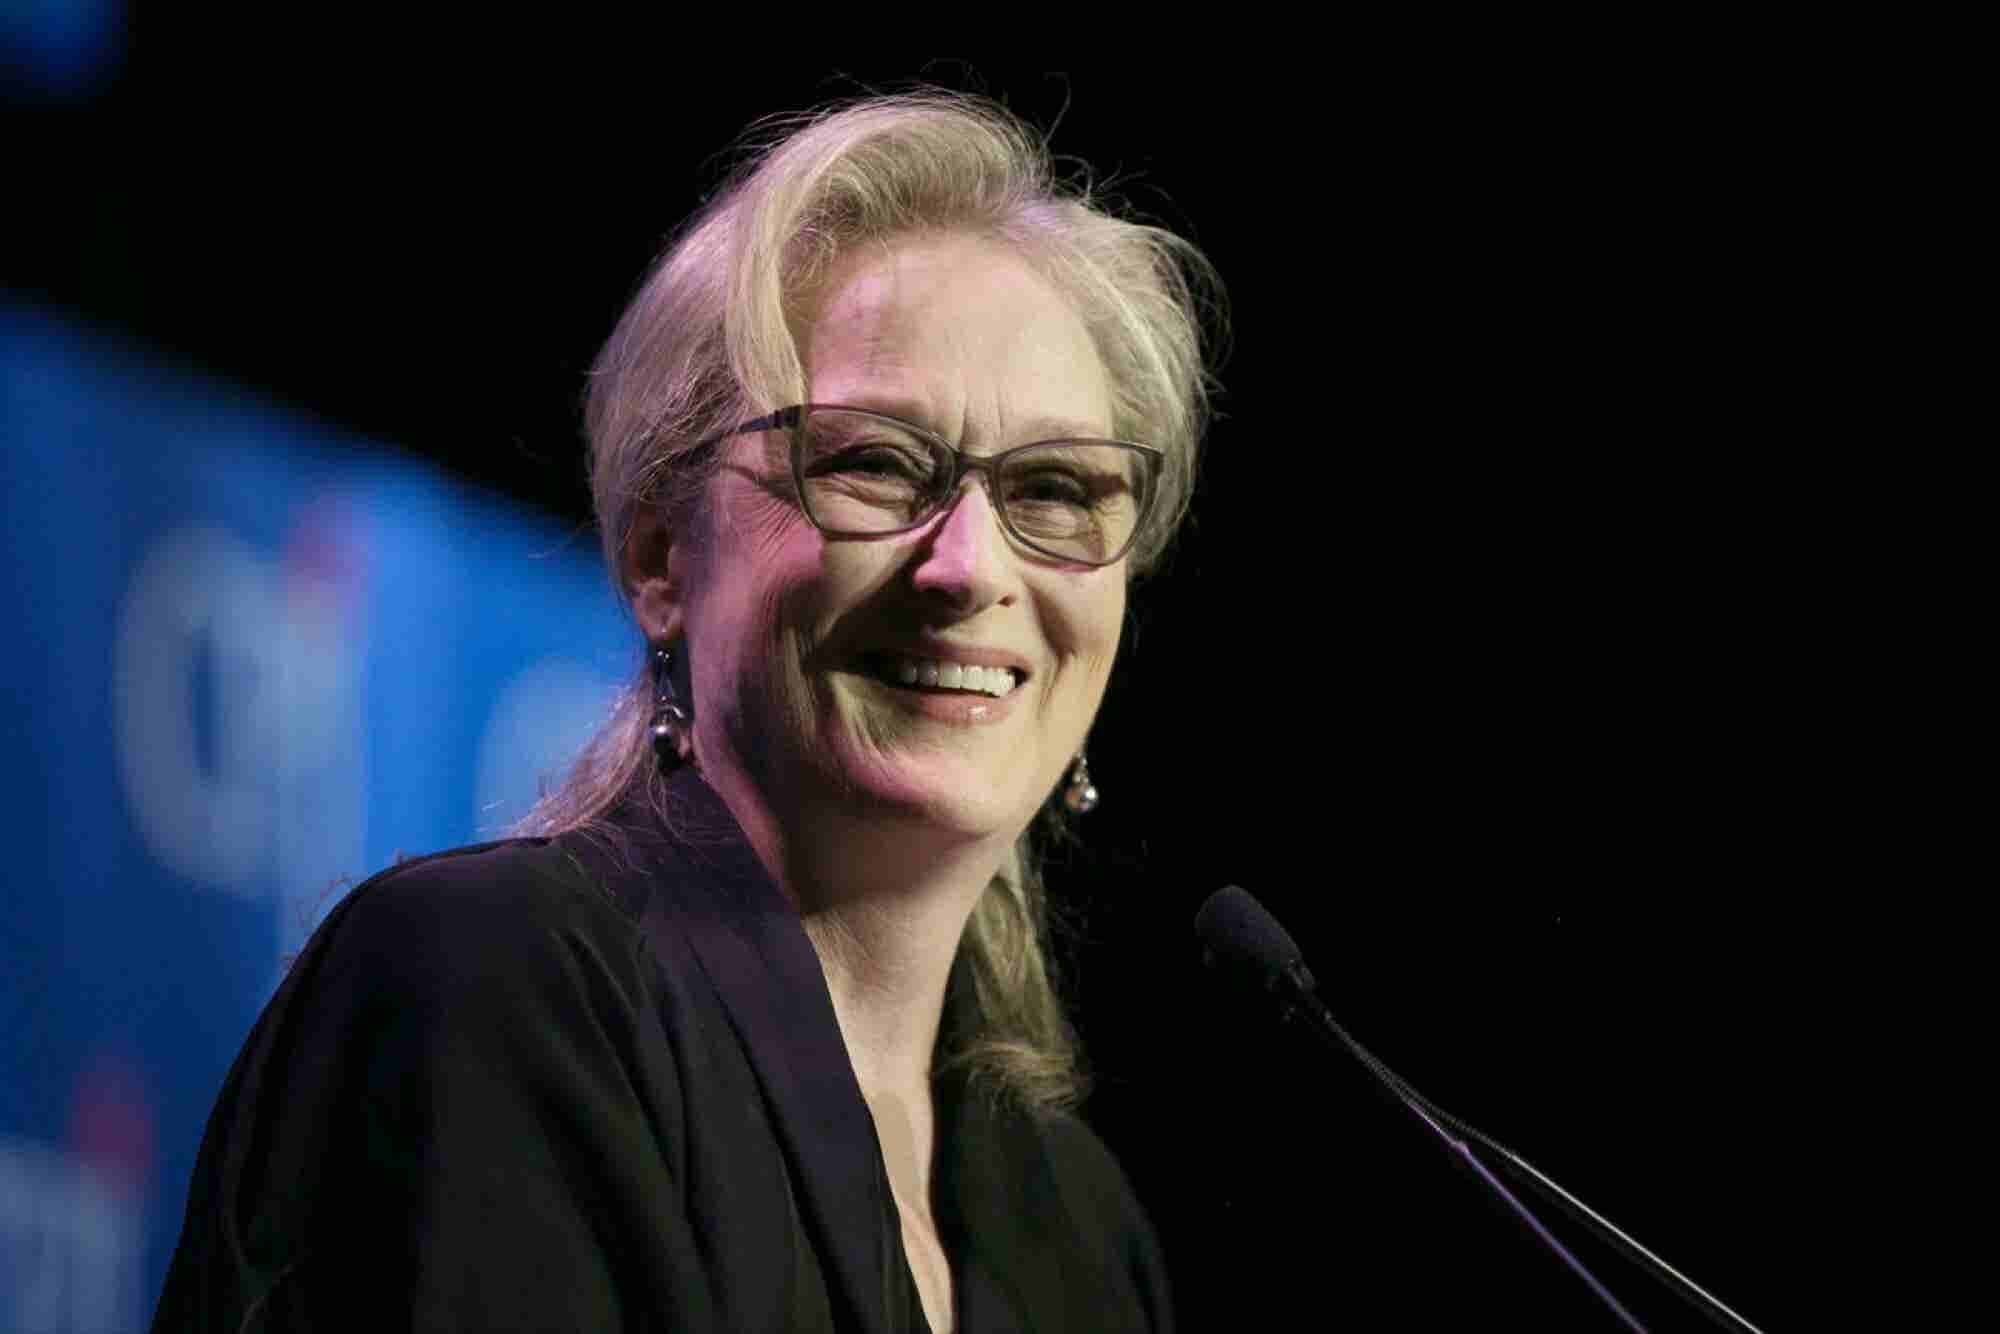 Meryl Streep on the Most Valuable Compliment You Can Give